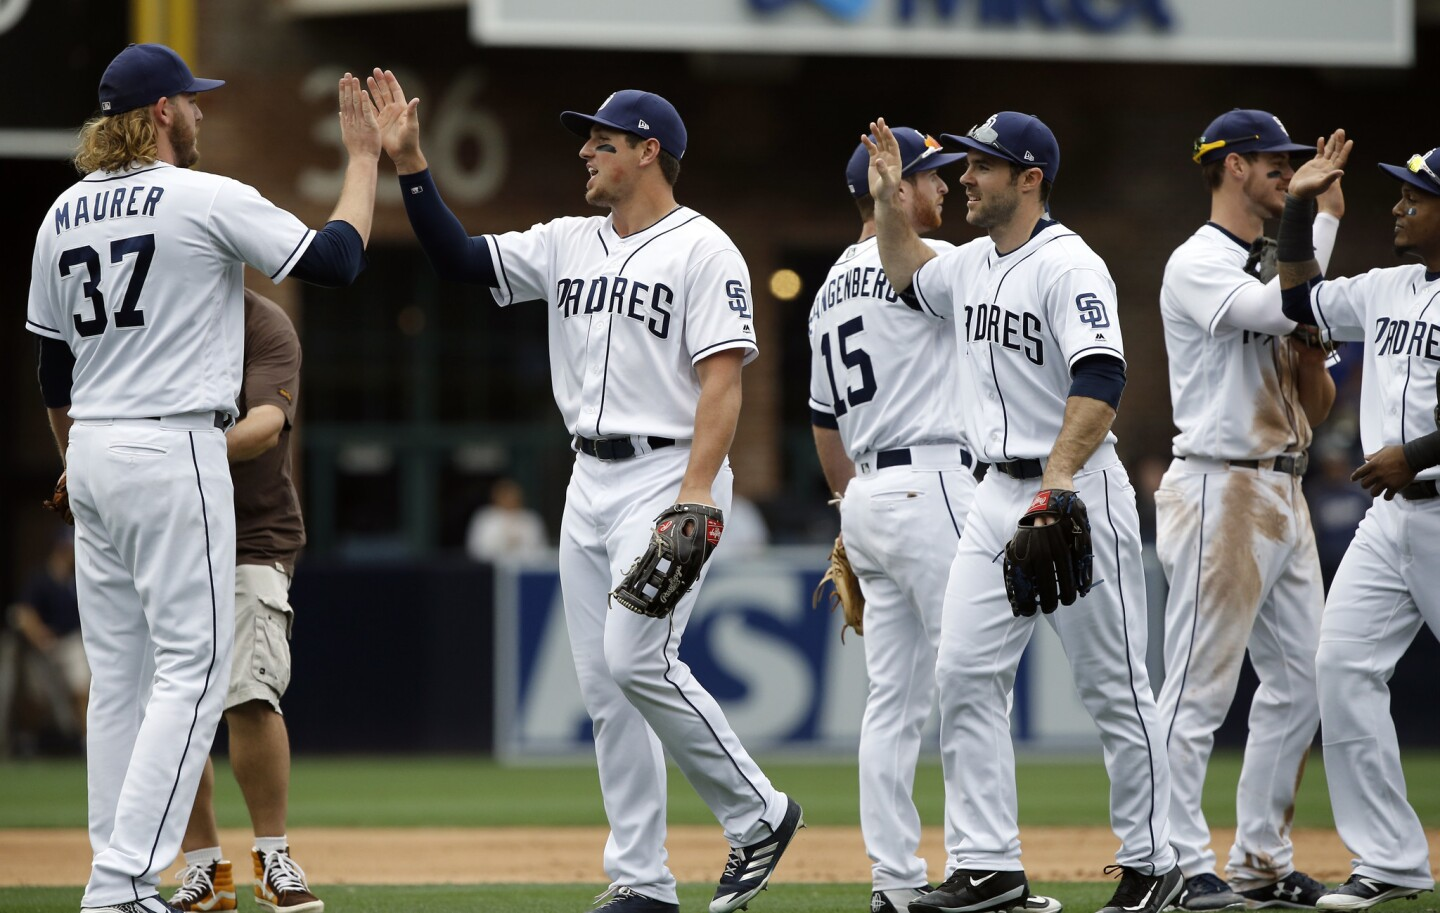 San Diego Padres players congratulate each other after the Padres defeated the Chicago Cubs 2-1 in a baseball game in San Diego, Wednesday, May 31, 2017. (AP Photo/Alex Gallardo)